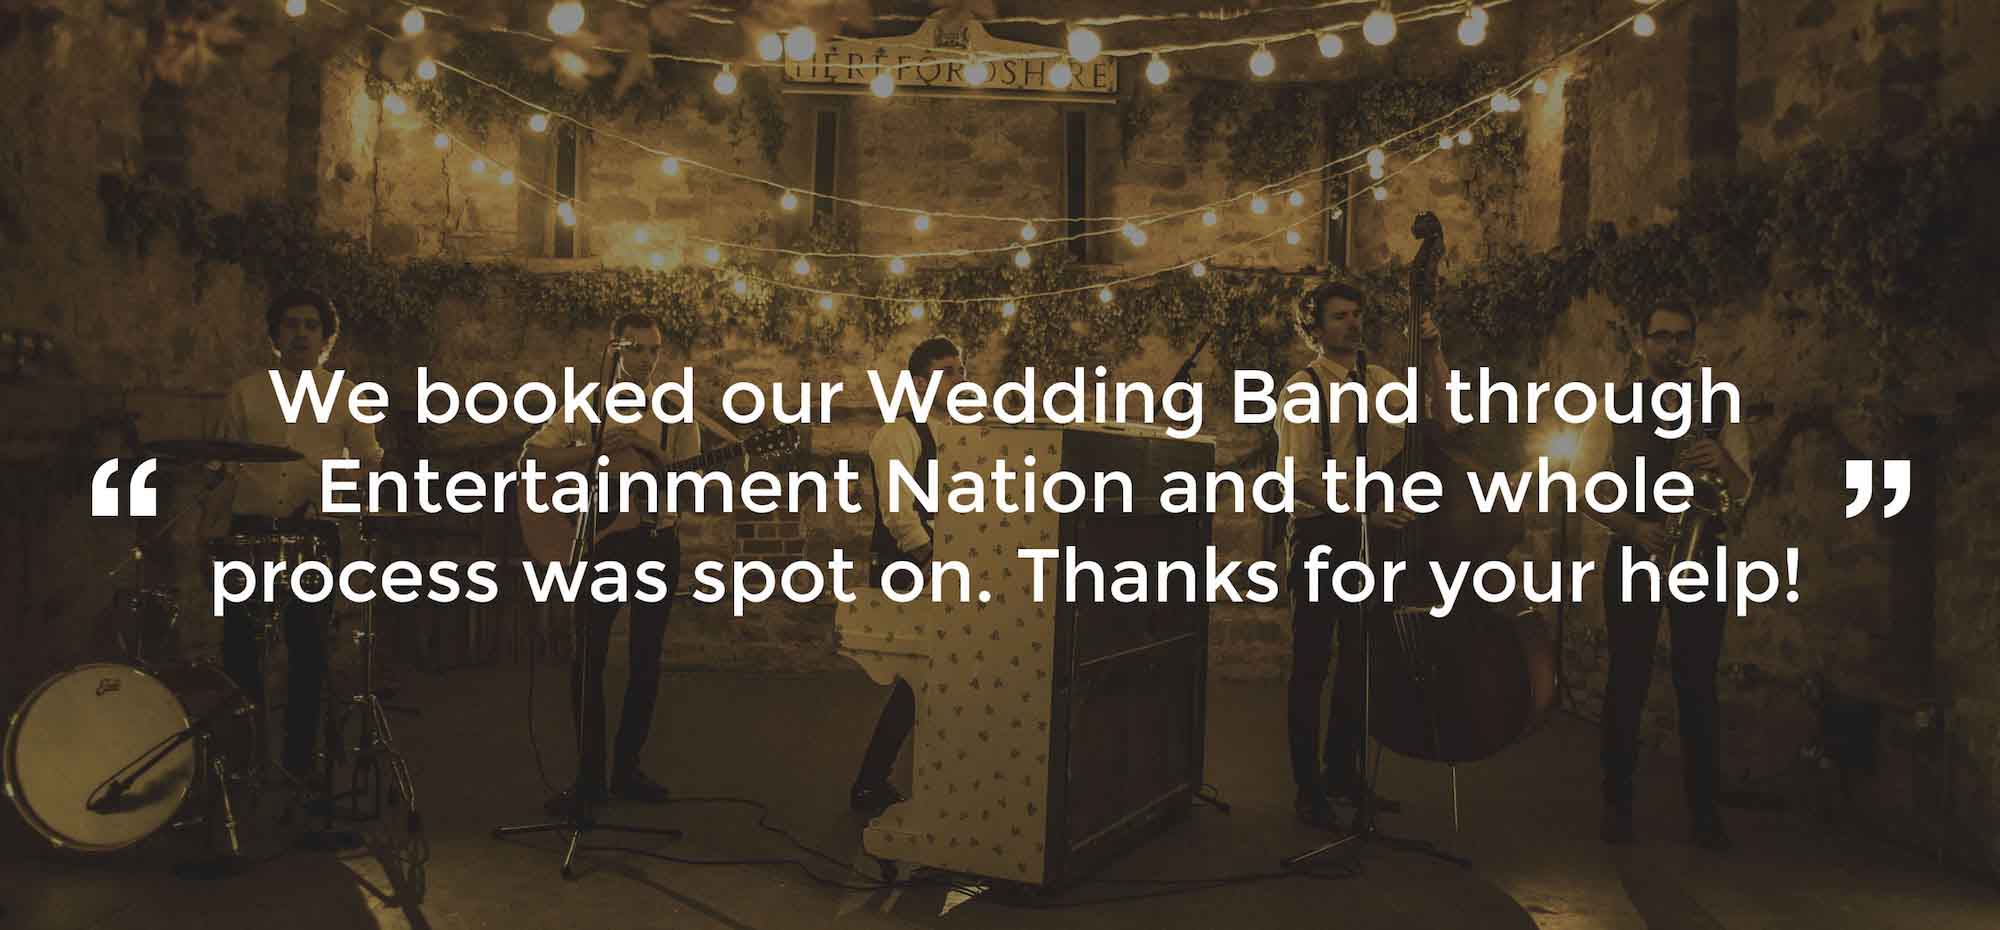 Client Review of a Wedding Band West Sussex